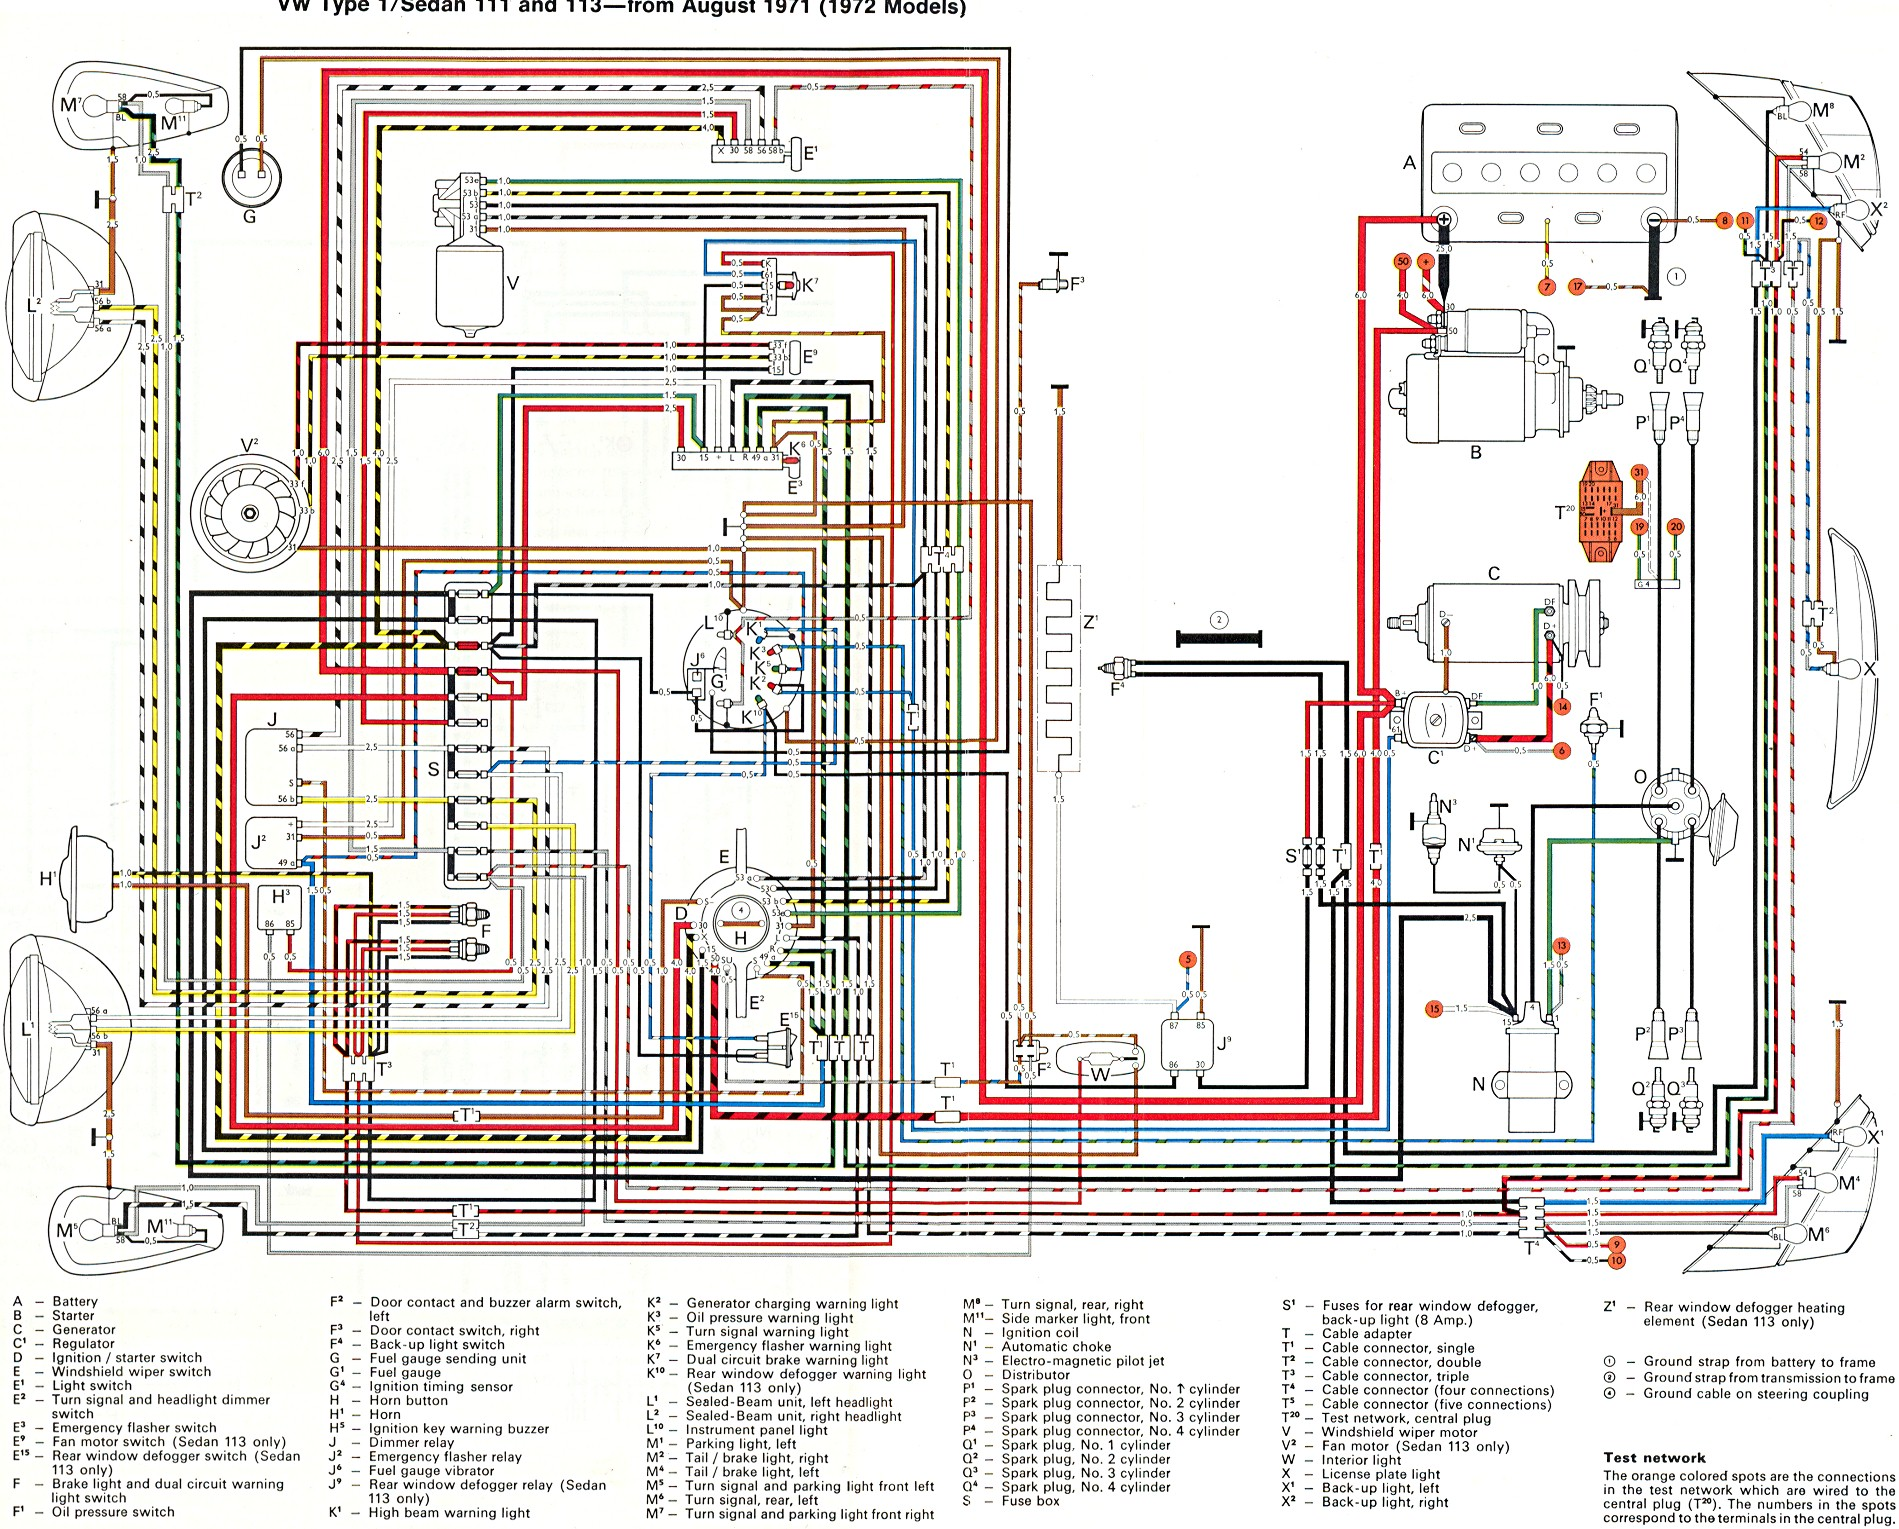 Schemas Electriques Heavy Duty Flasher 550 Wiring Diagram 1972 Standard And Super